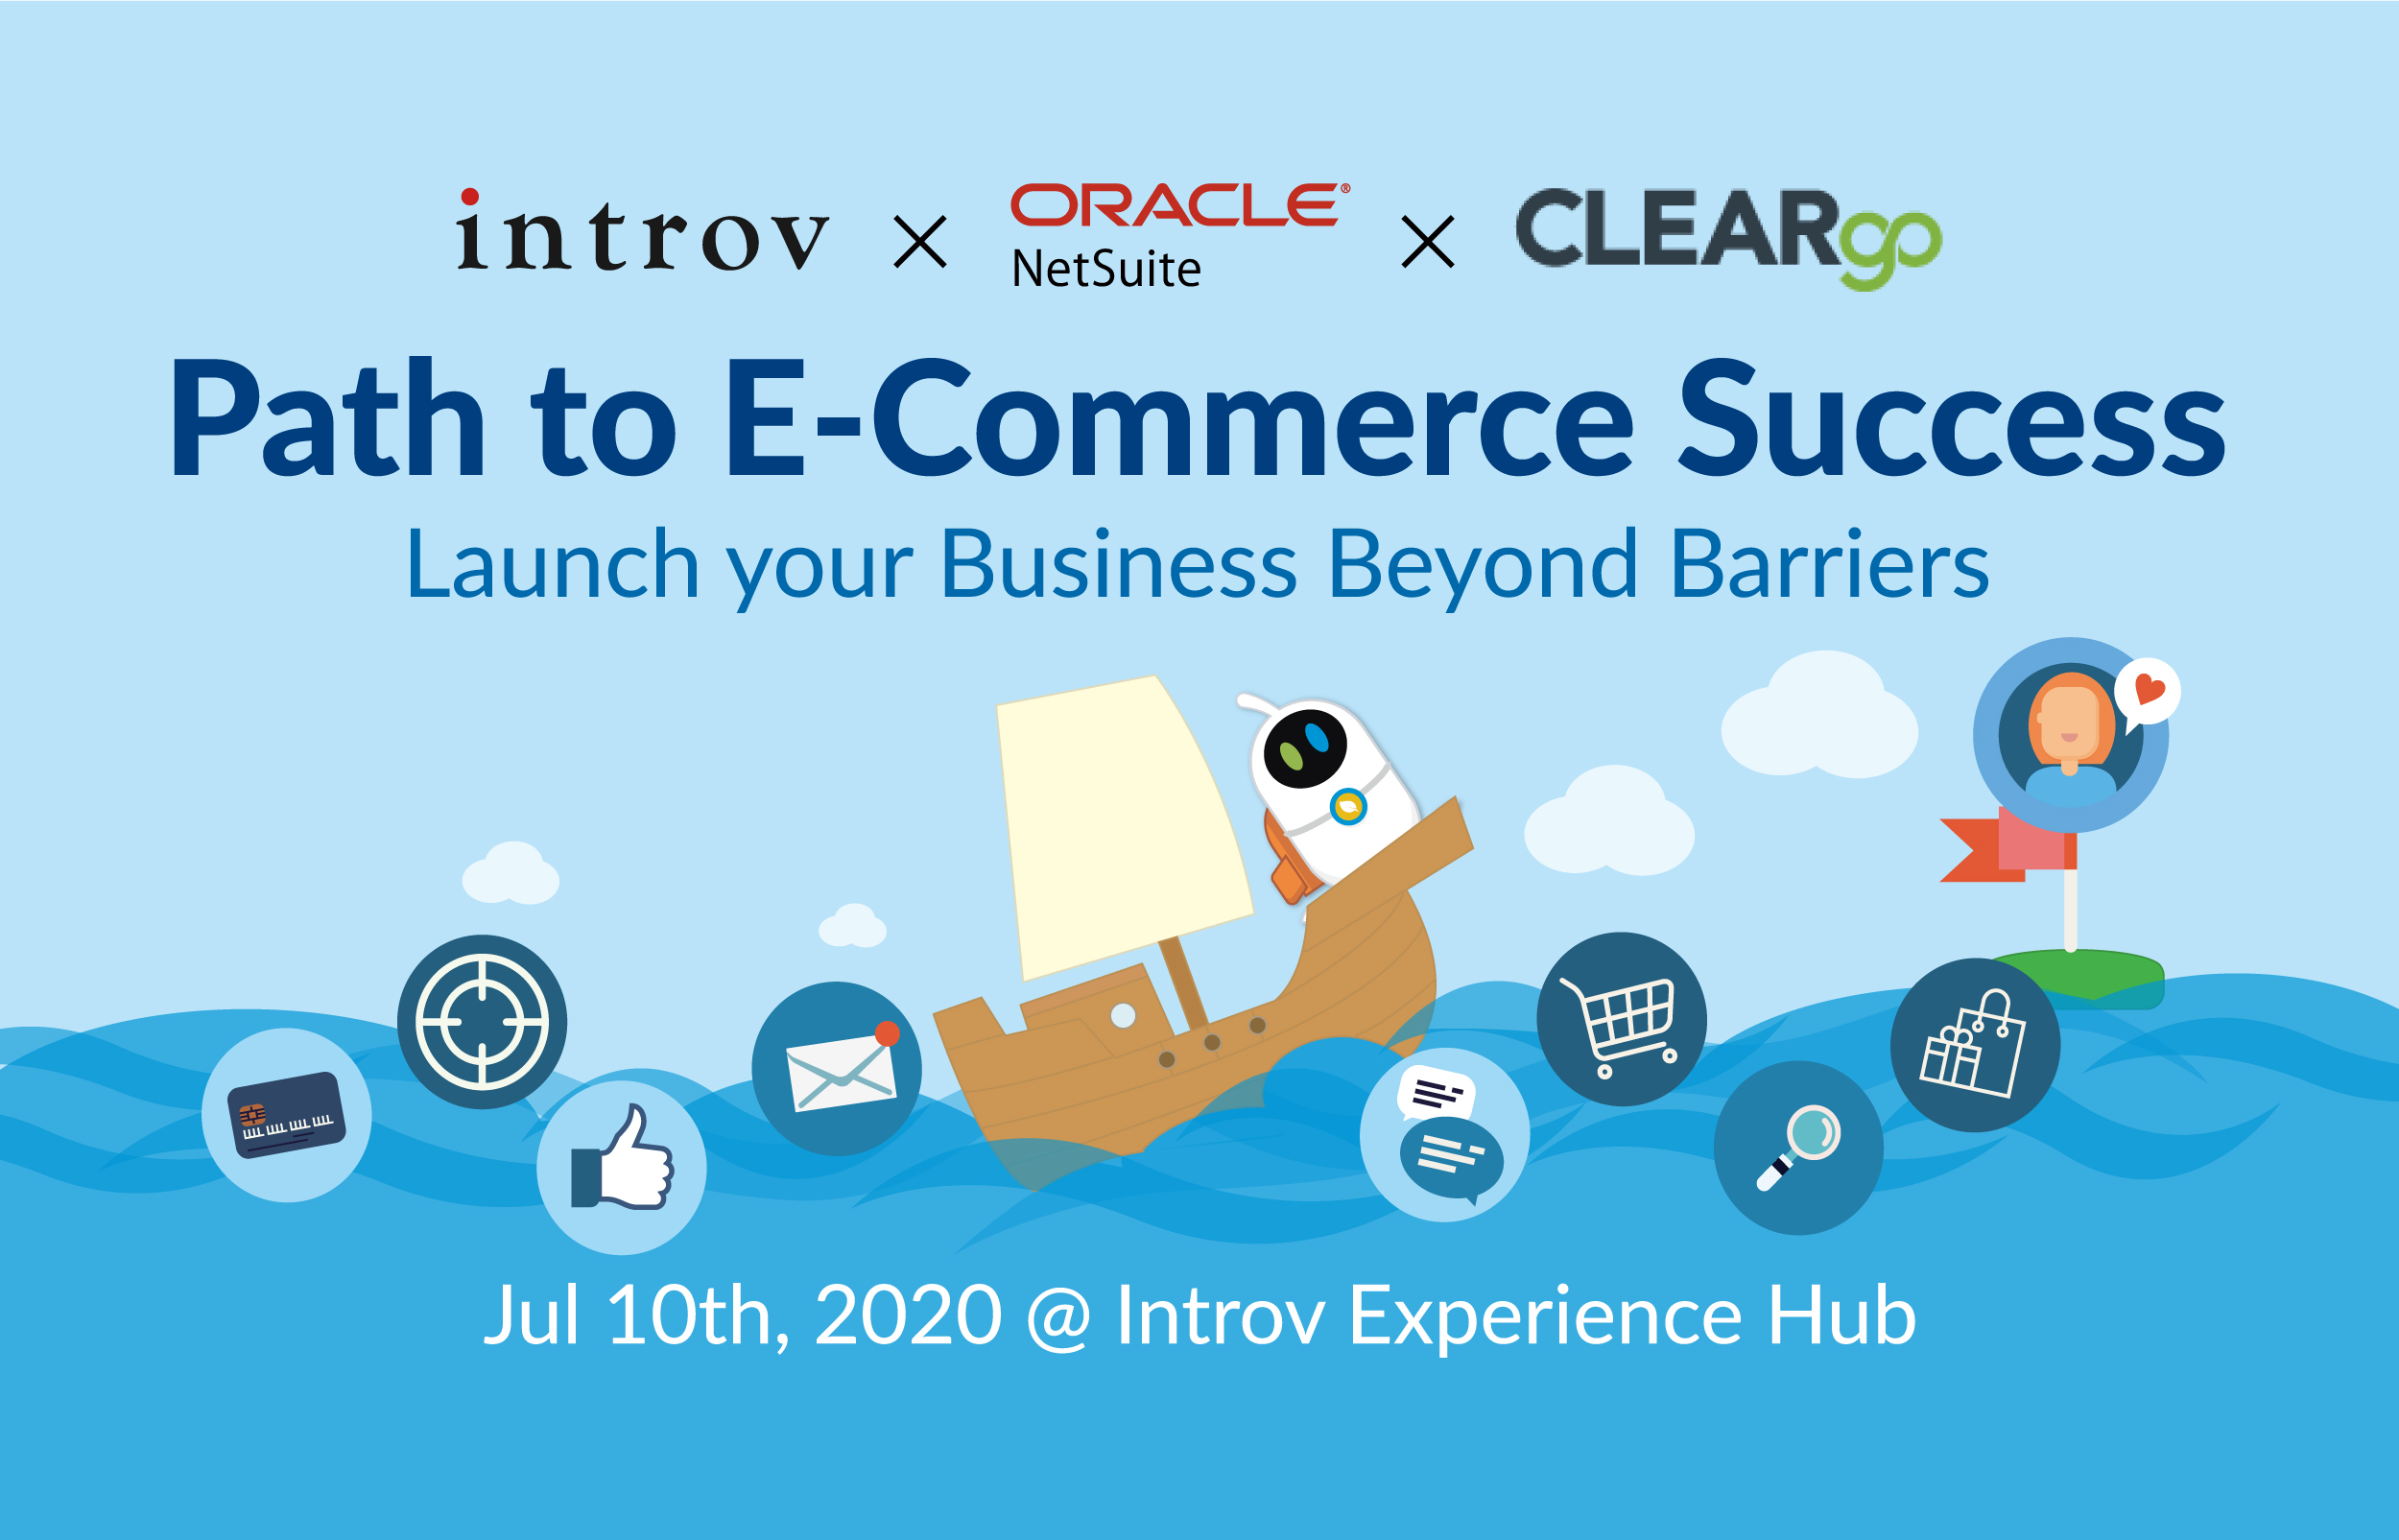 [Webinar] Path to E-Commerce Success – Launch your Business Beyond Barriers (July 10th, 2020)